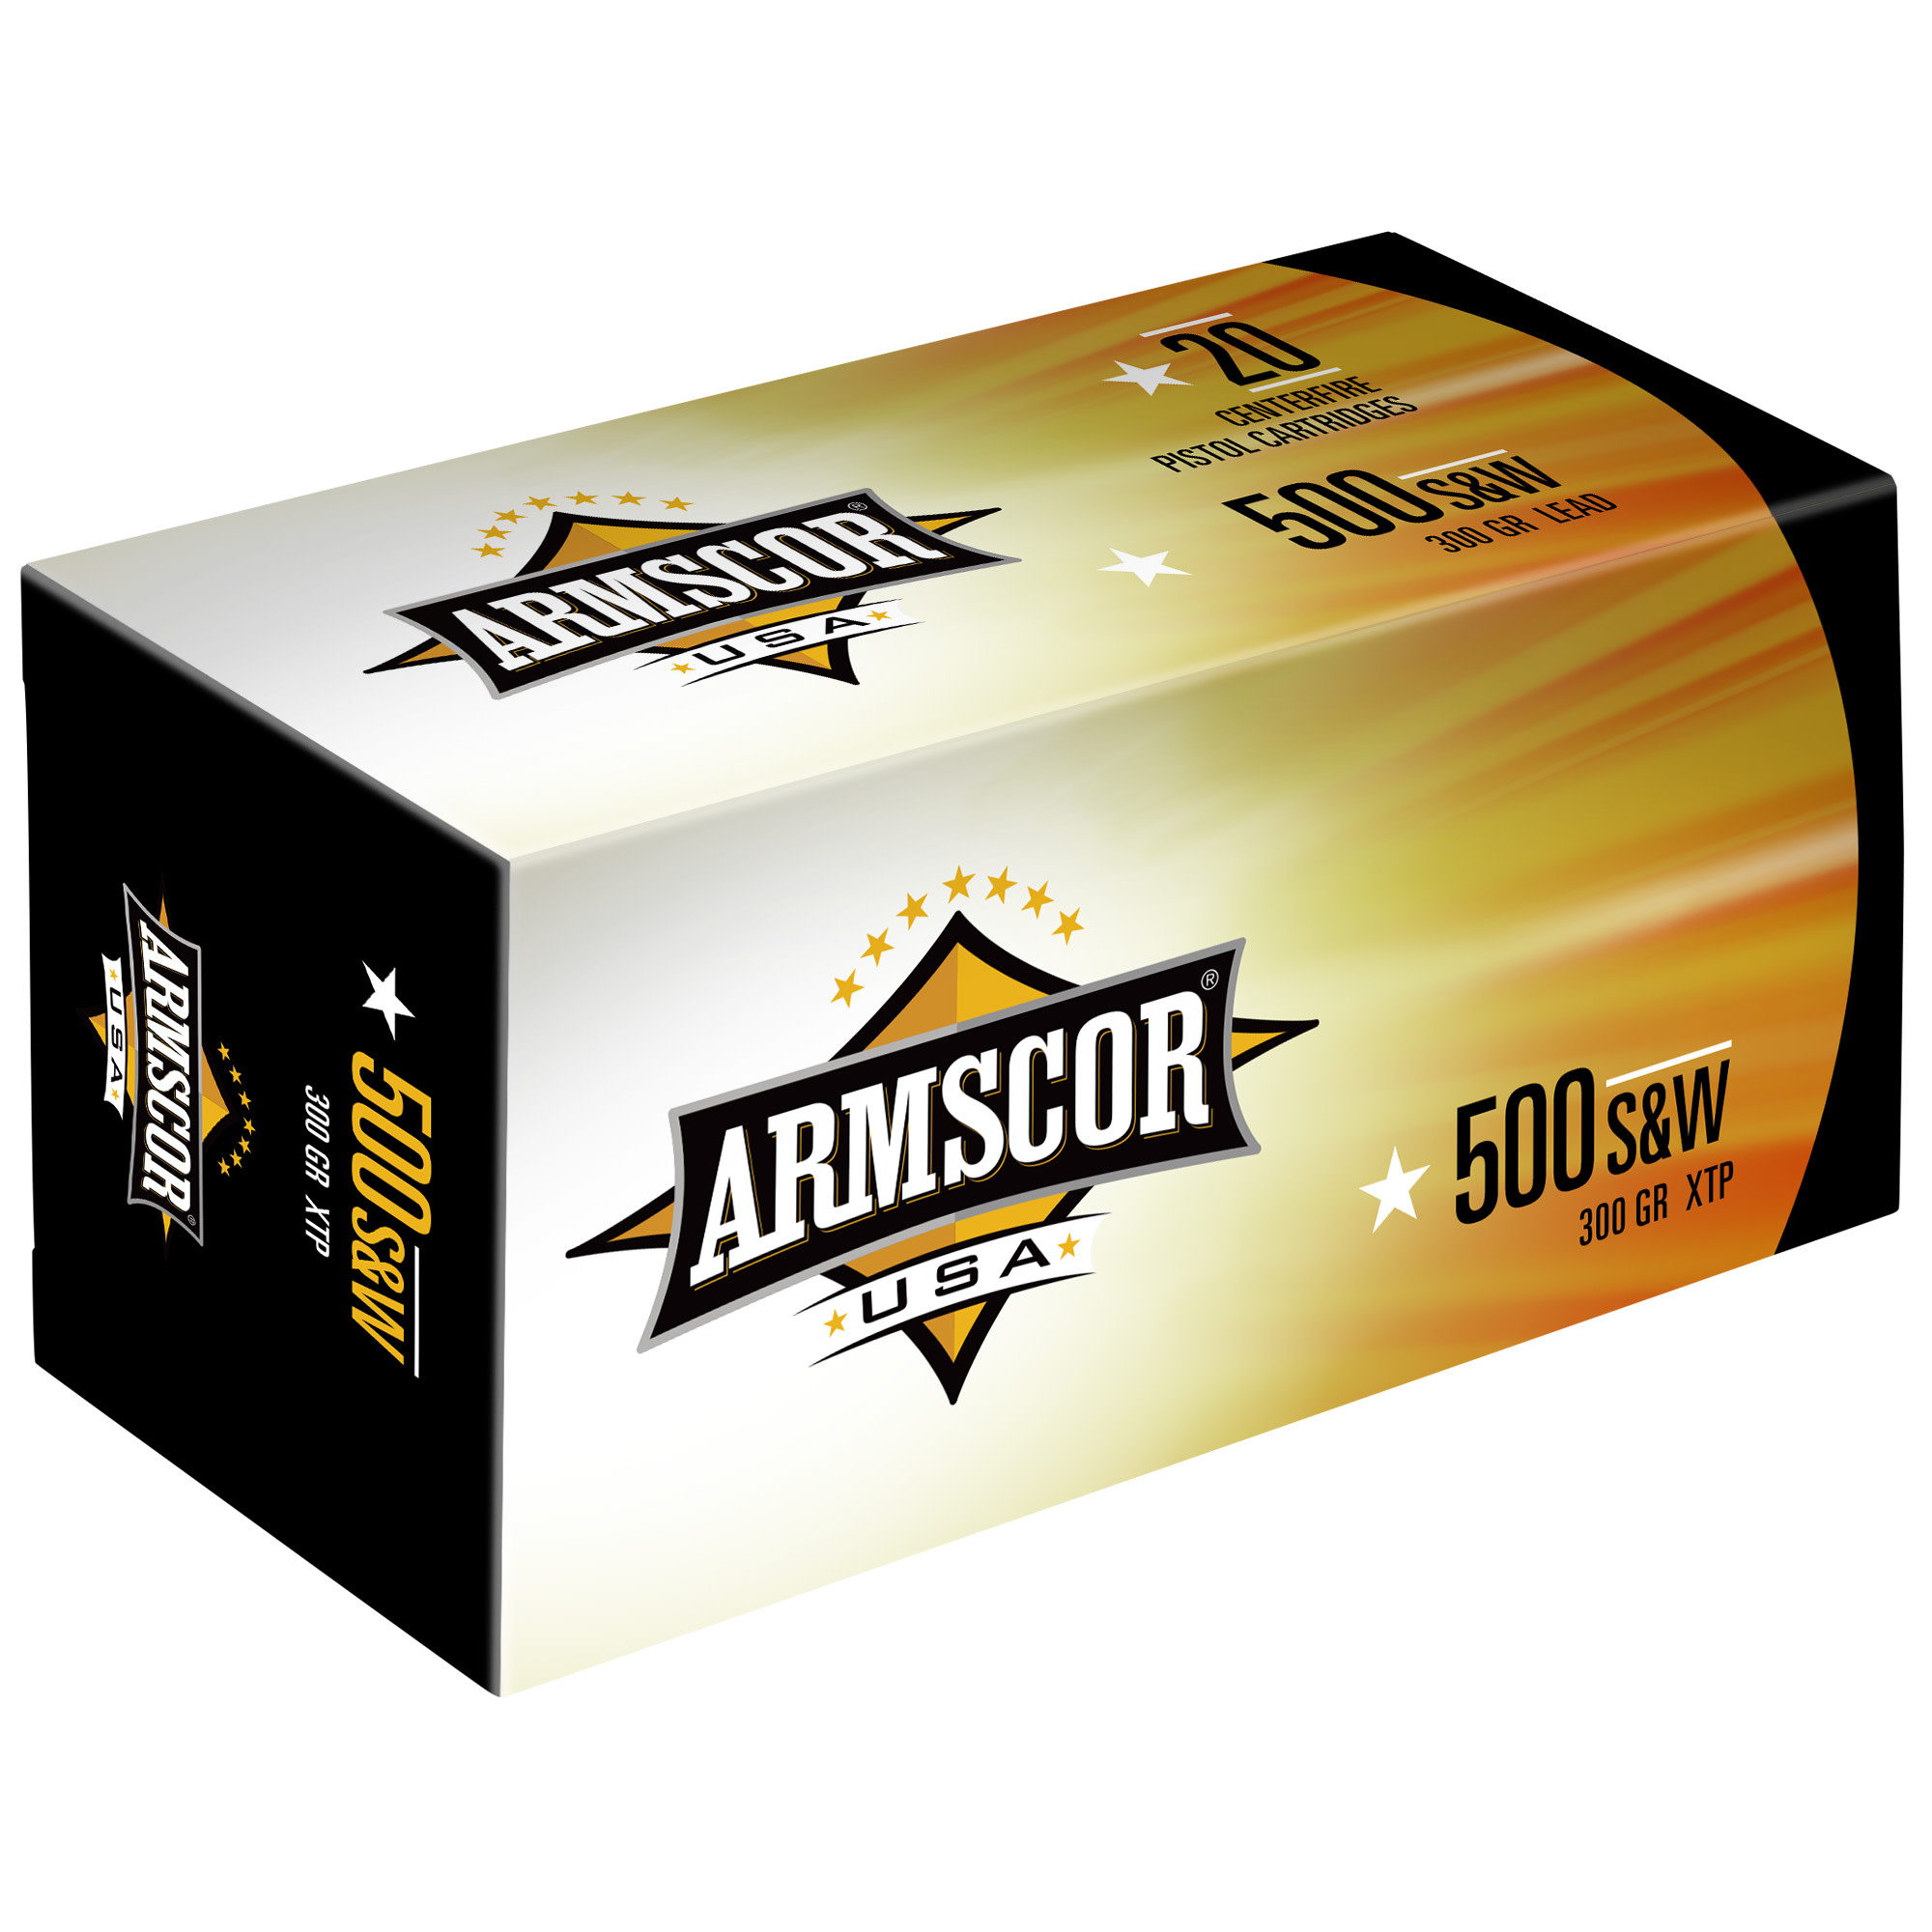 Armscor USA Ammunition 500 S&W Magnum 300 Grain XTP Solid Hollow Point Per 20